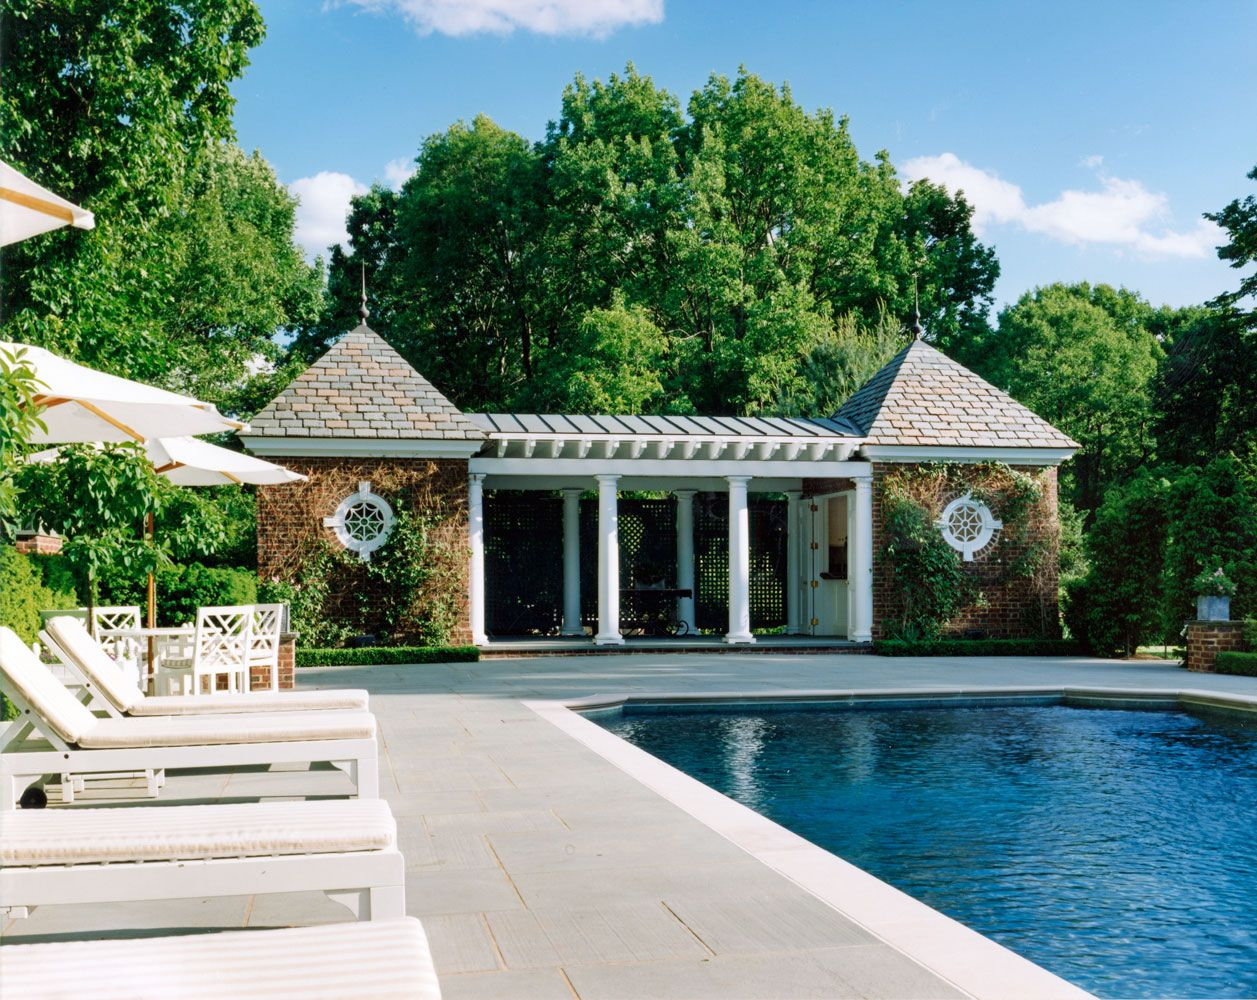 Charles Hilton Architects | American Brick Georgian Pool House, Patio And  Pool On An Extraordinary